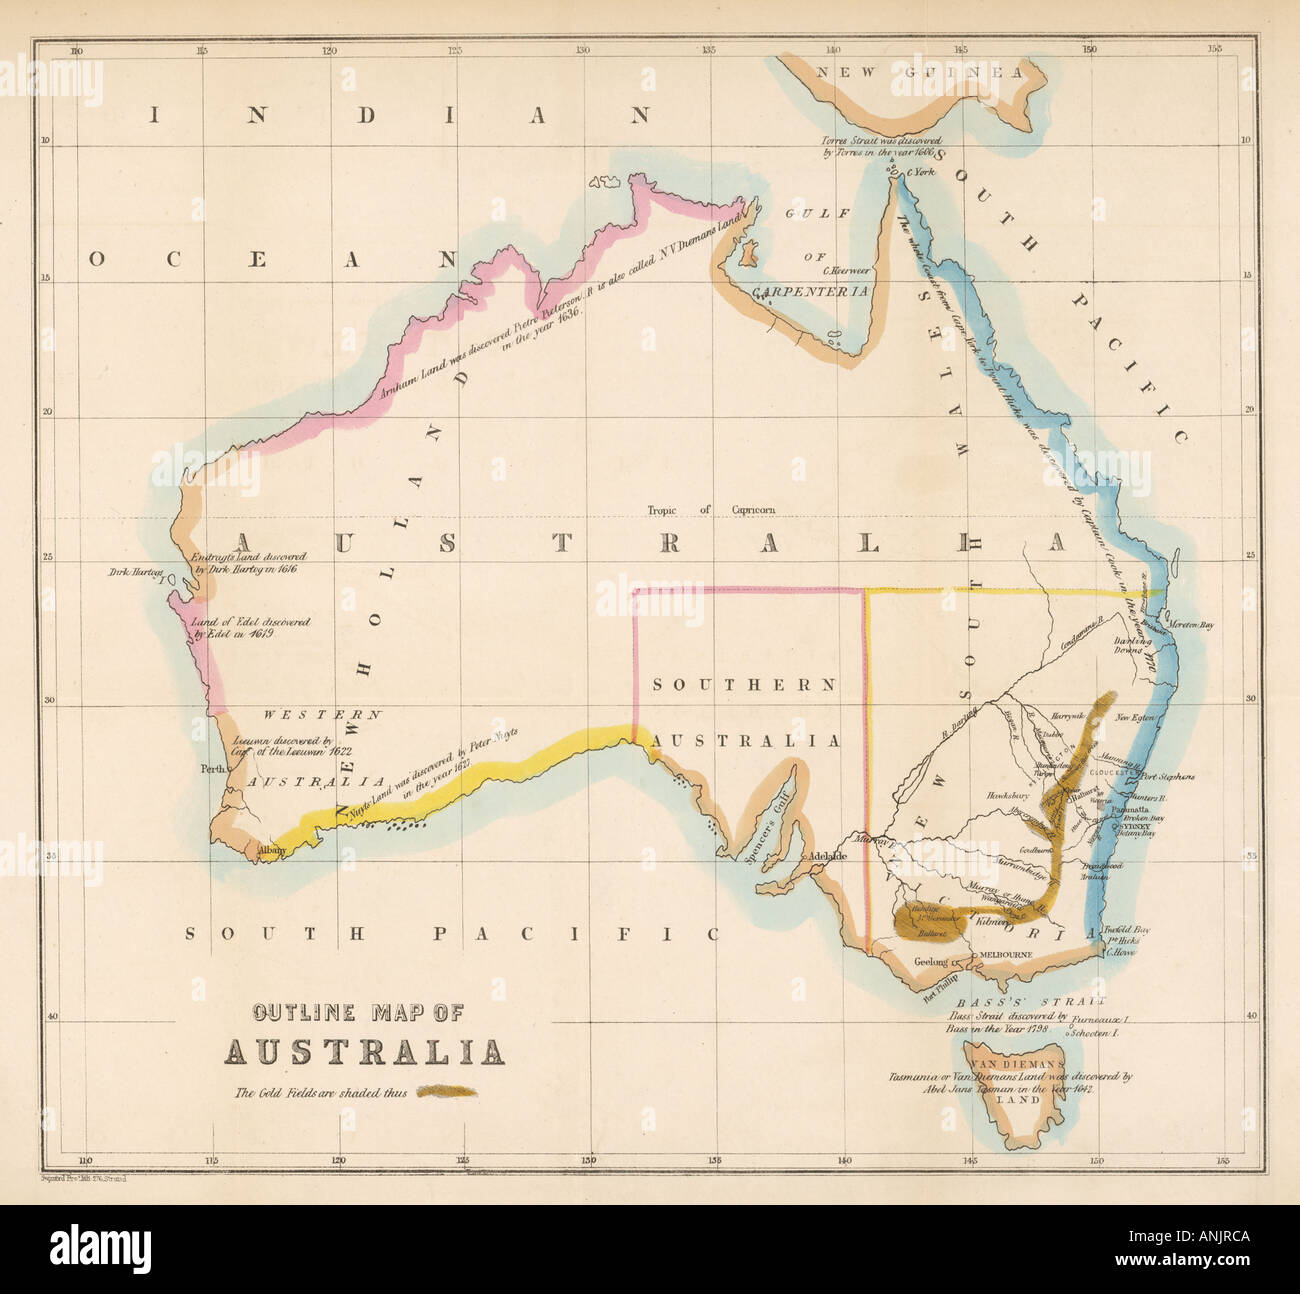 Map Of Australia Gold Rush.Maps Australia 1850s Stock Photo 5074889 Alamy